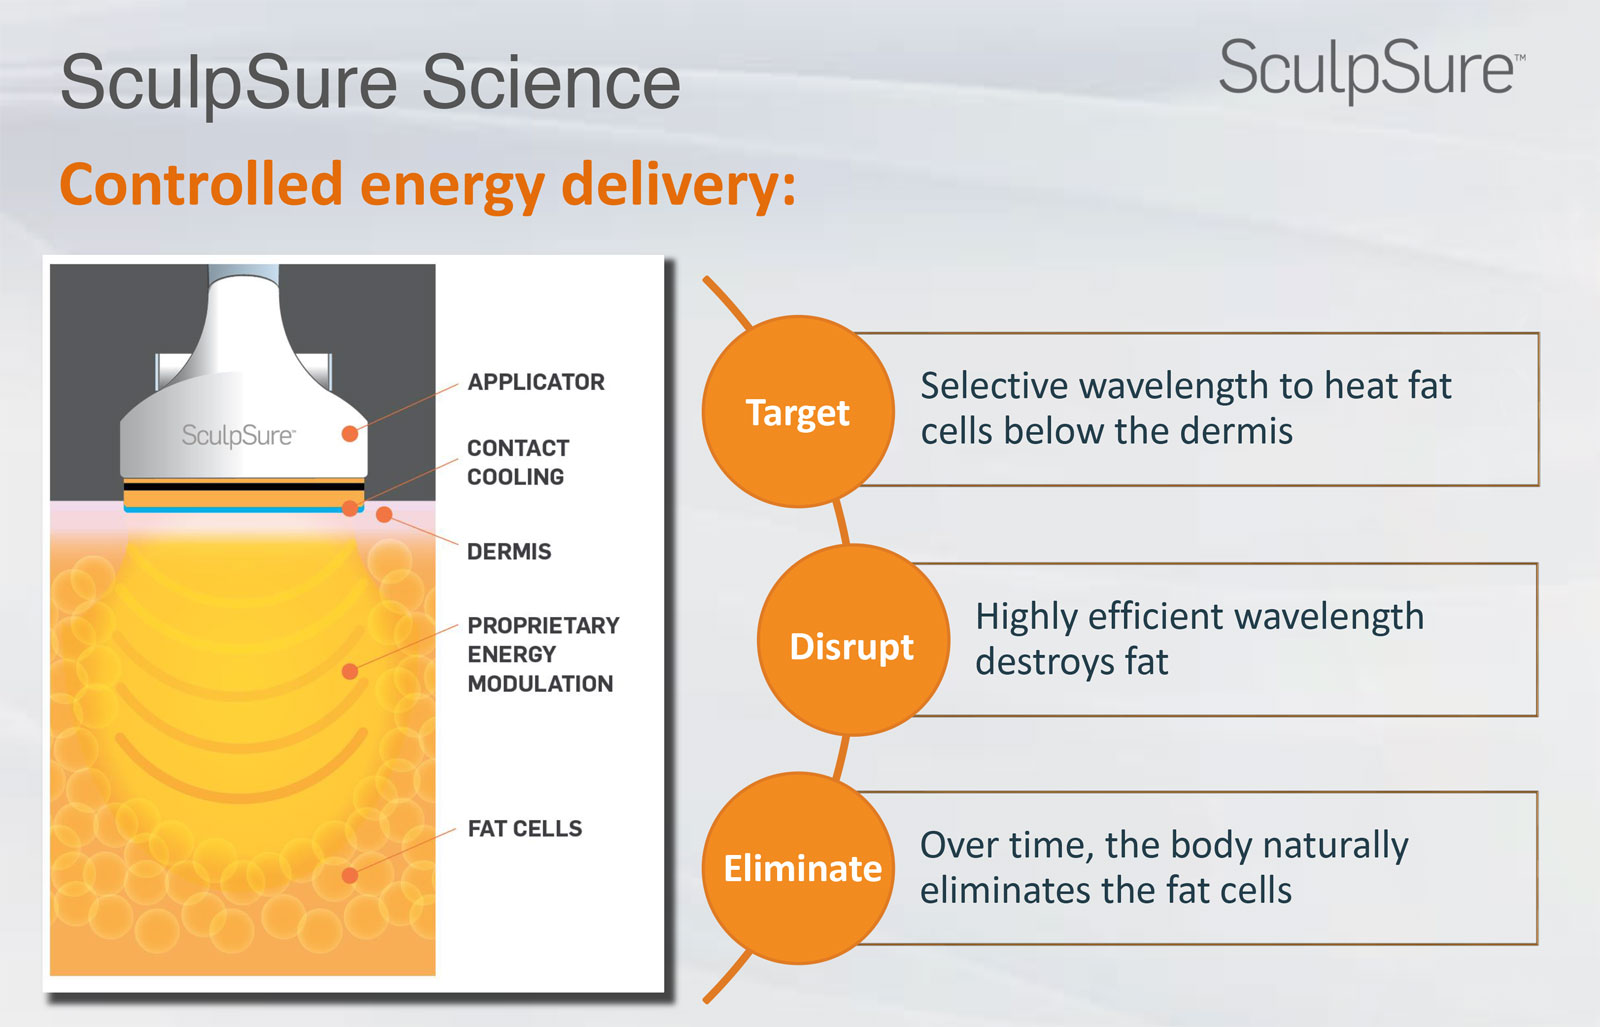 SculpSure Science - How SculpSure Works